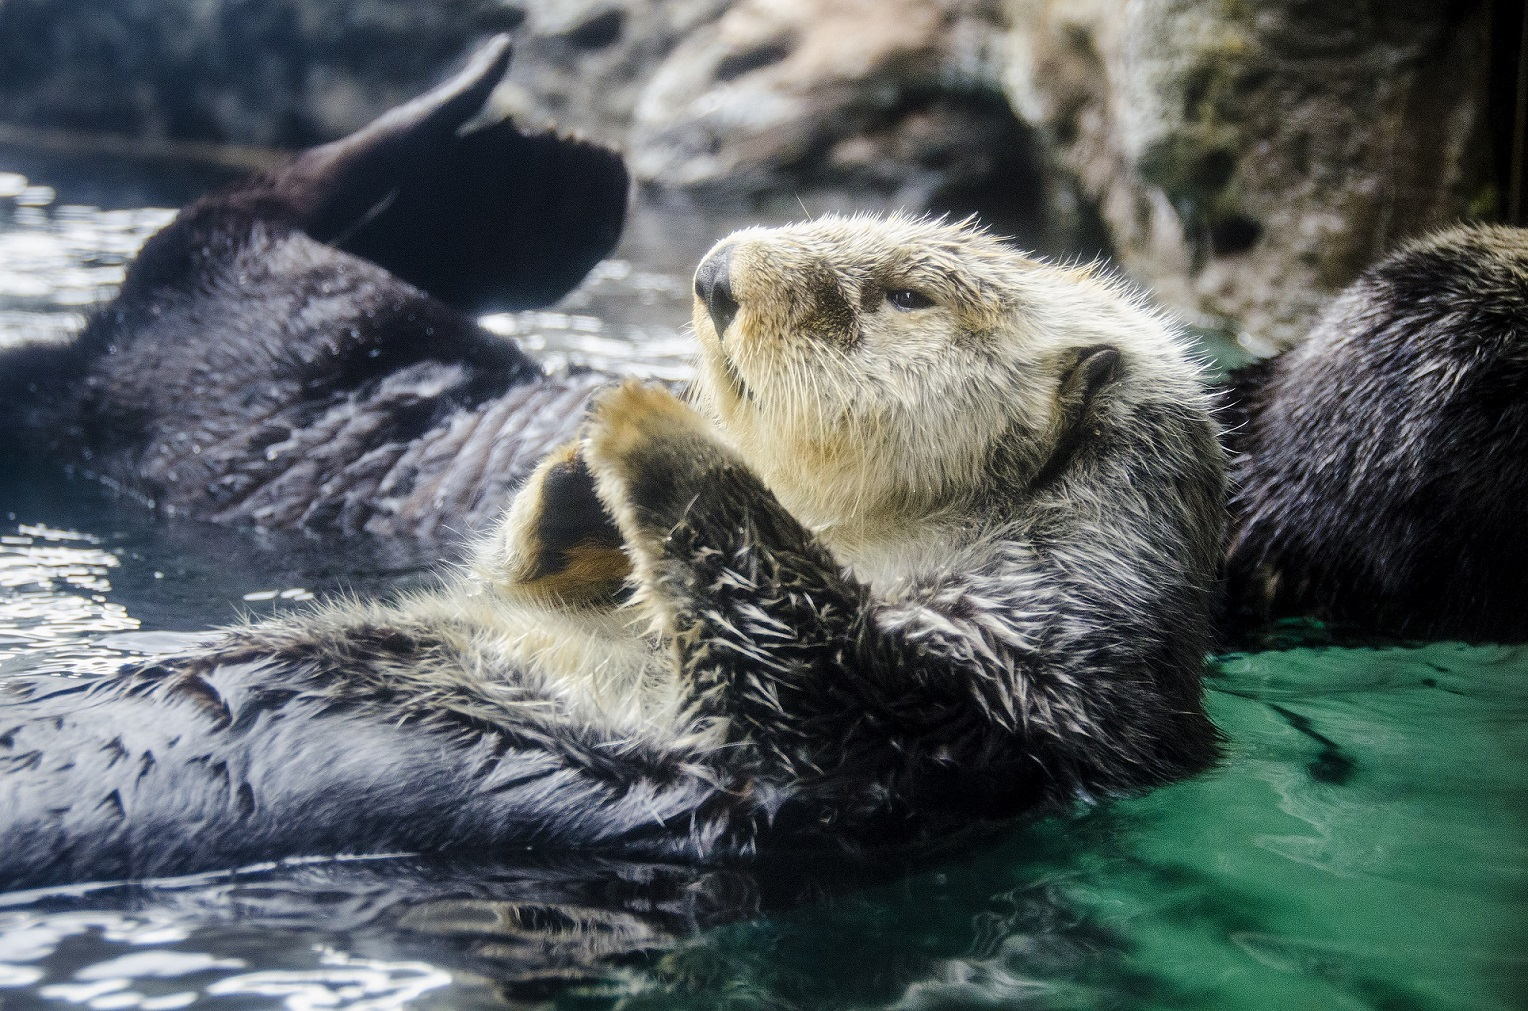 Sea otter floating in exhibit